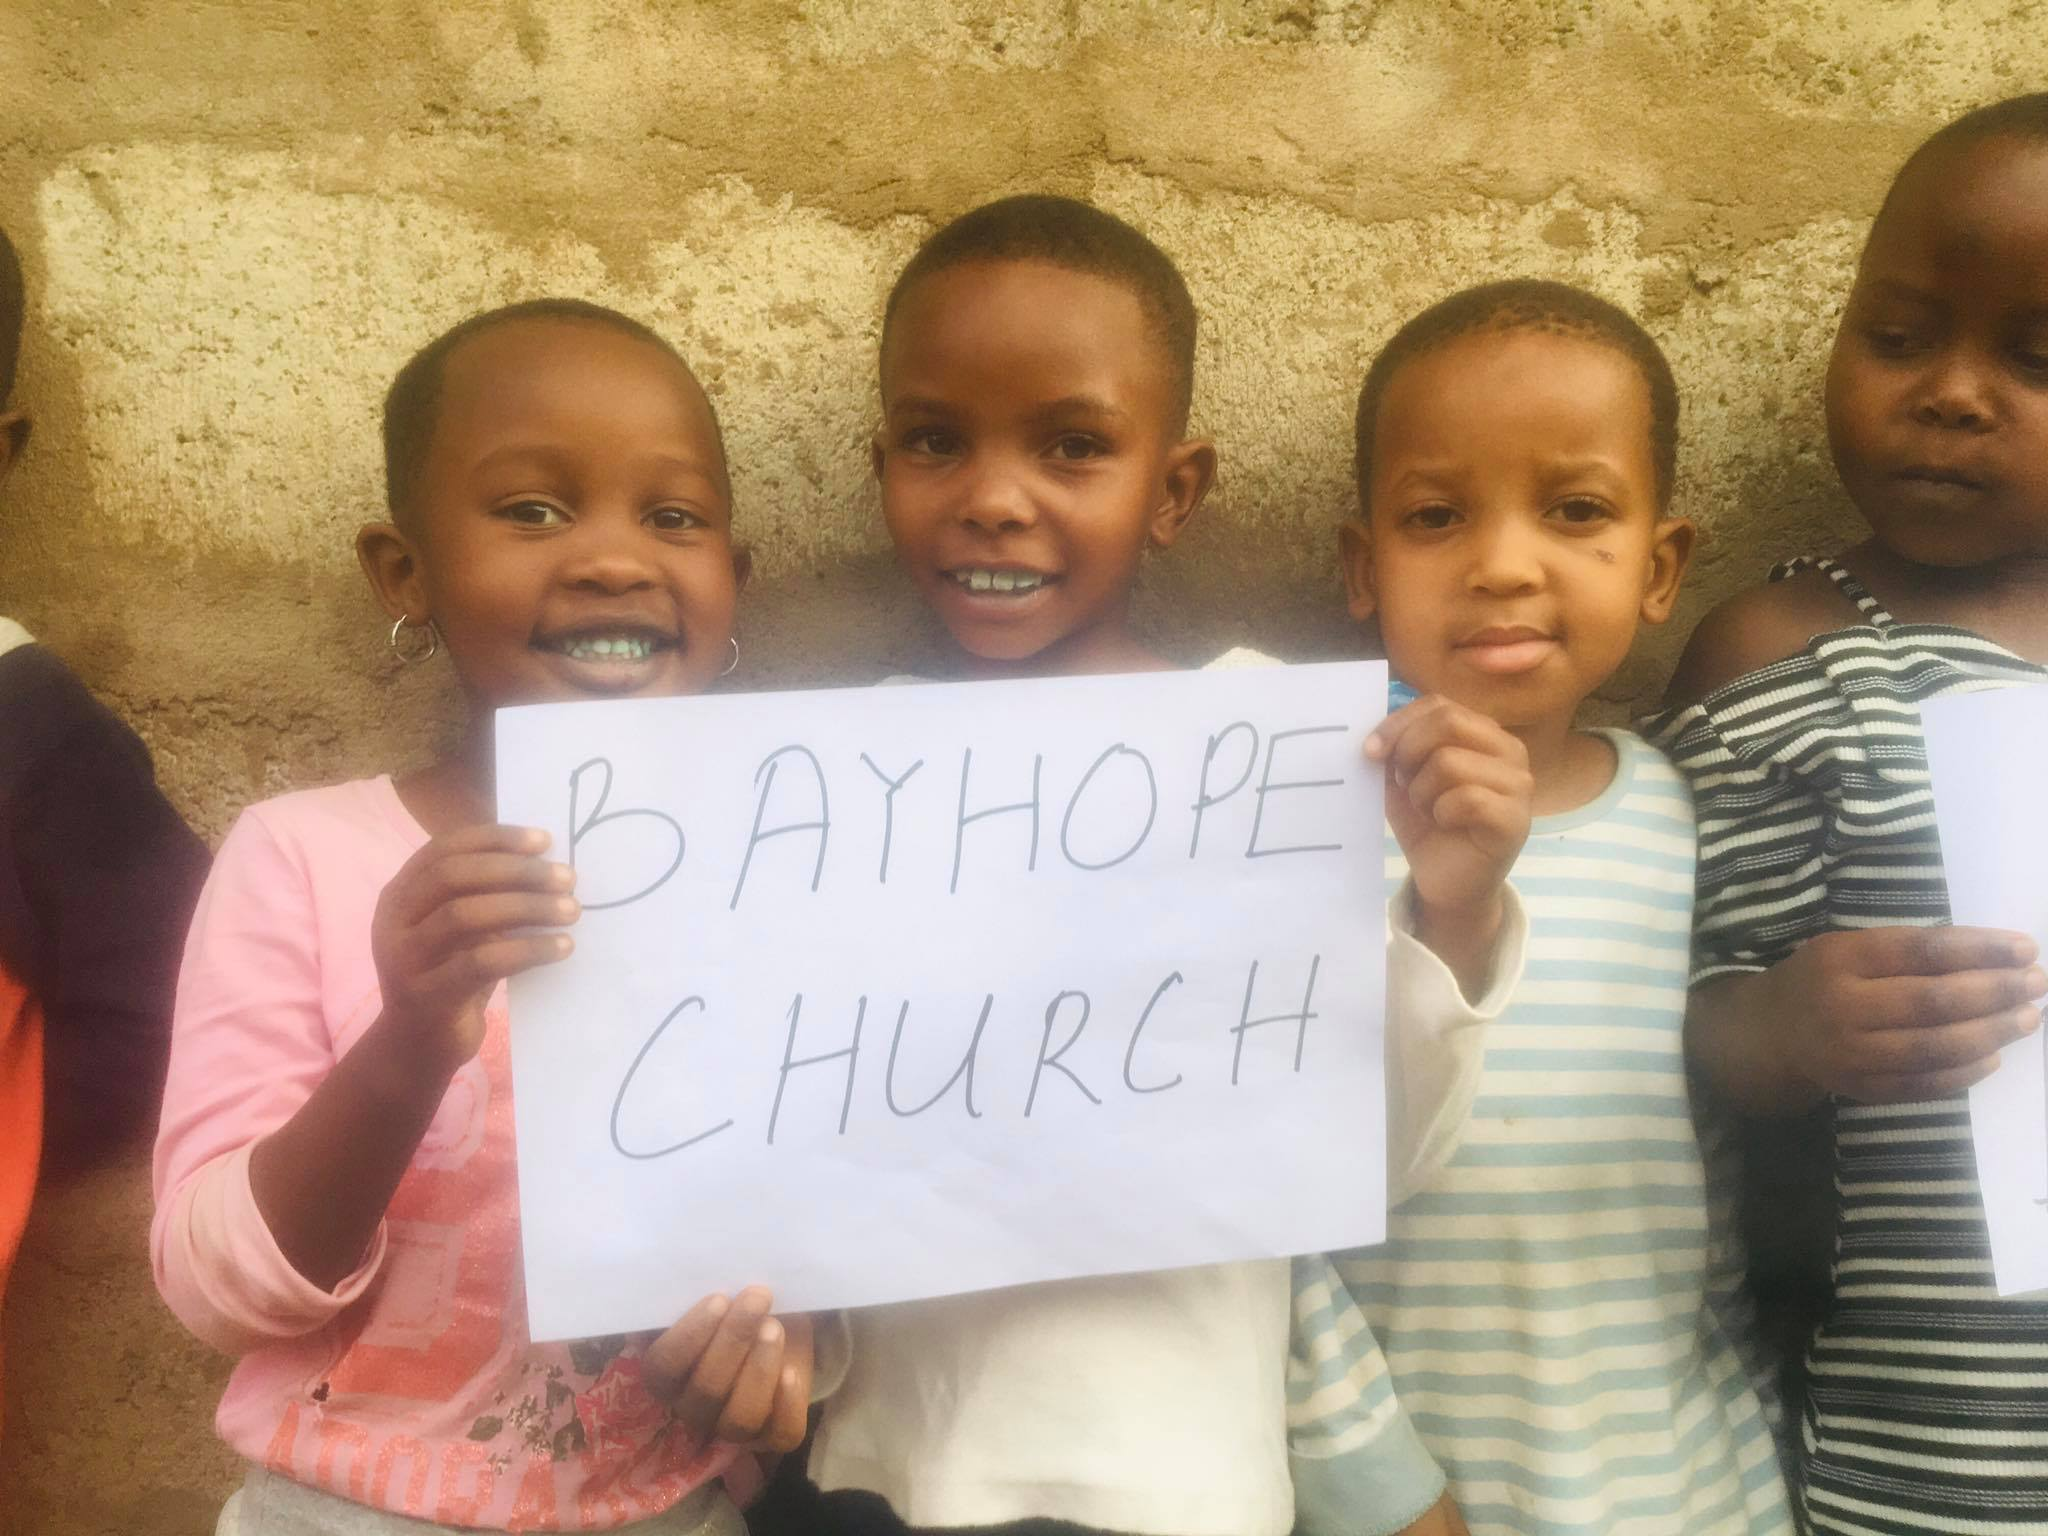 bayhope church child centre